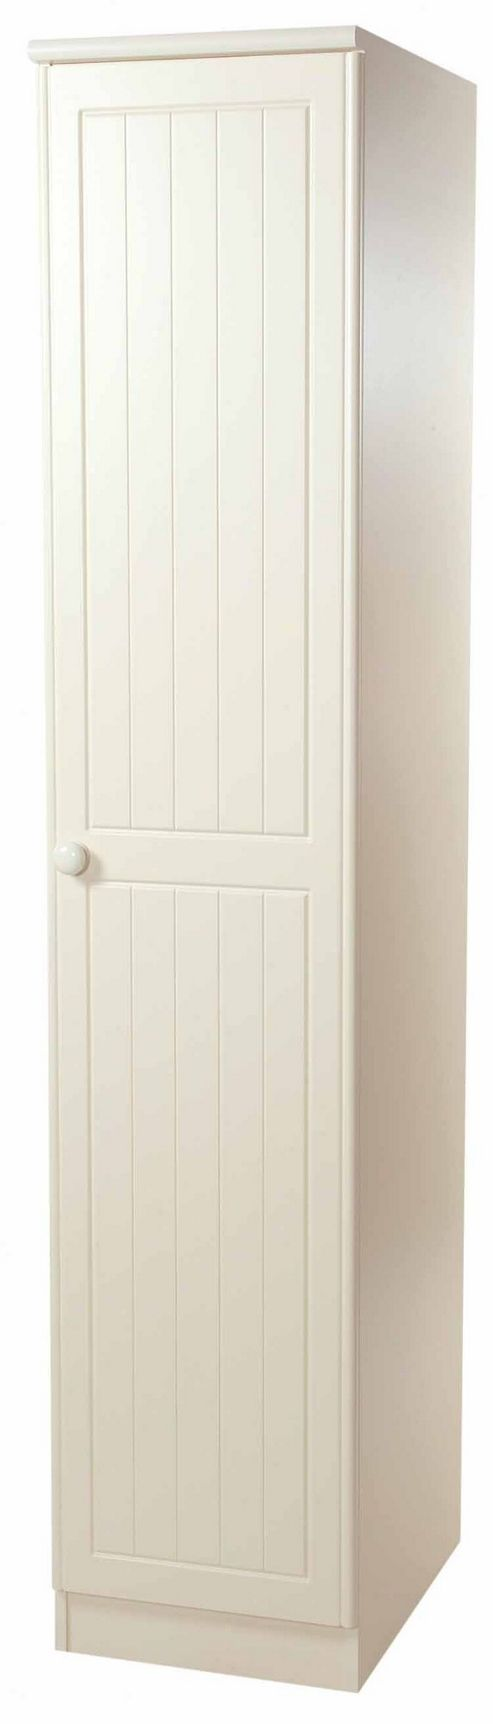 Welcome Furniture Warwick Single Wardrobe - Beech